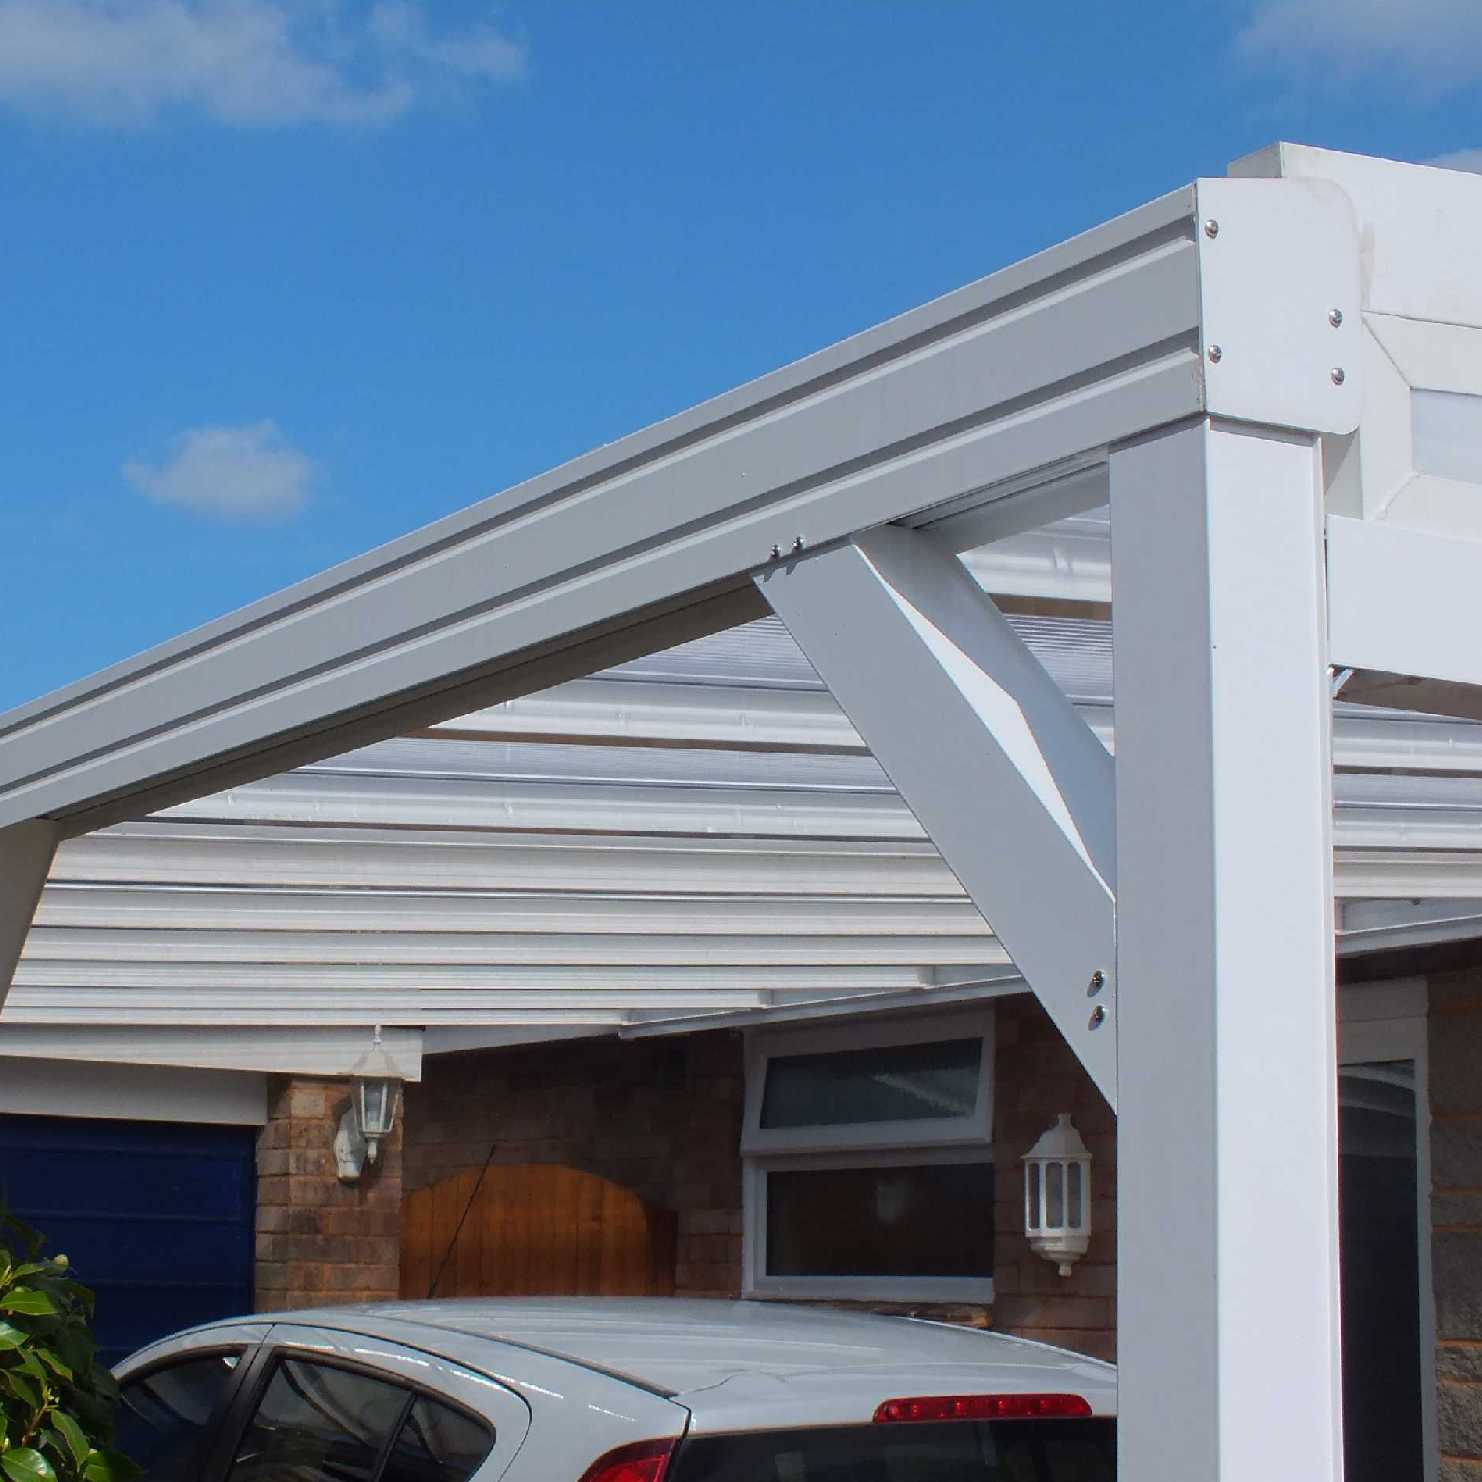 Great deals on Omega Smart White Lean-To Canopy with 16mm Polycarbonate Glazing - 8.0m (W) x 4.5m (P), (4) Supporting Posts